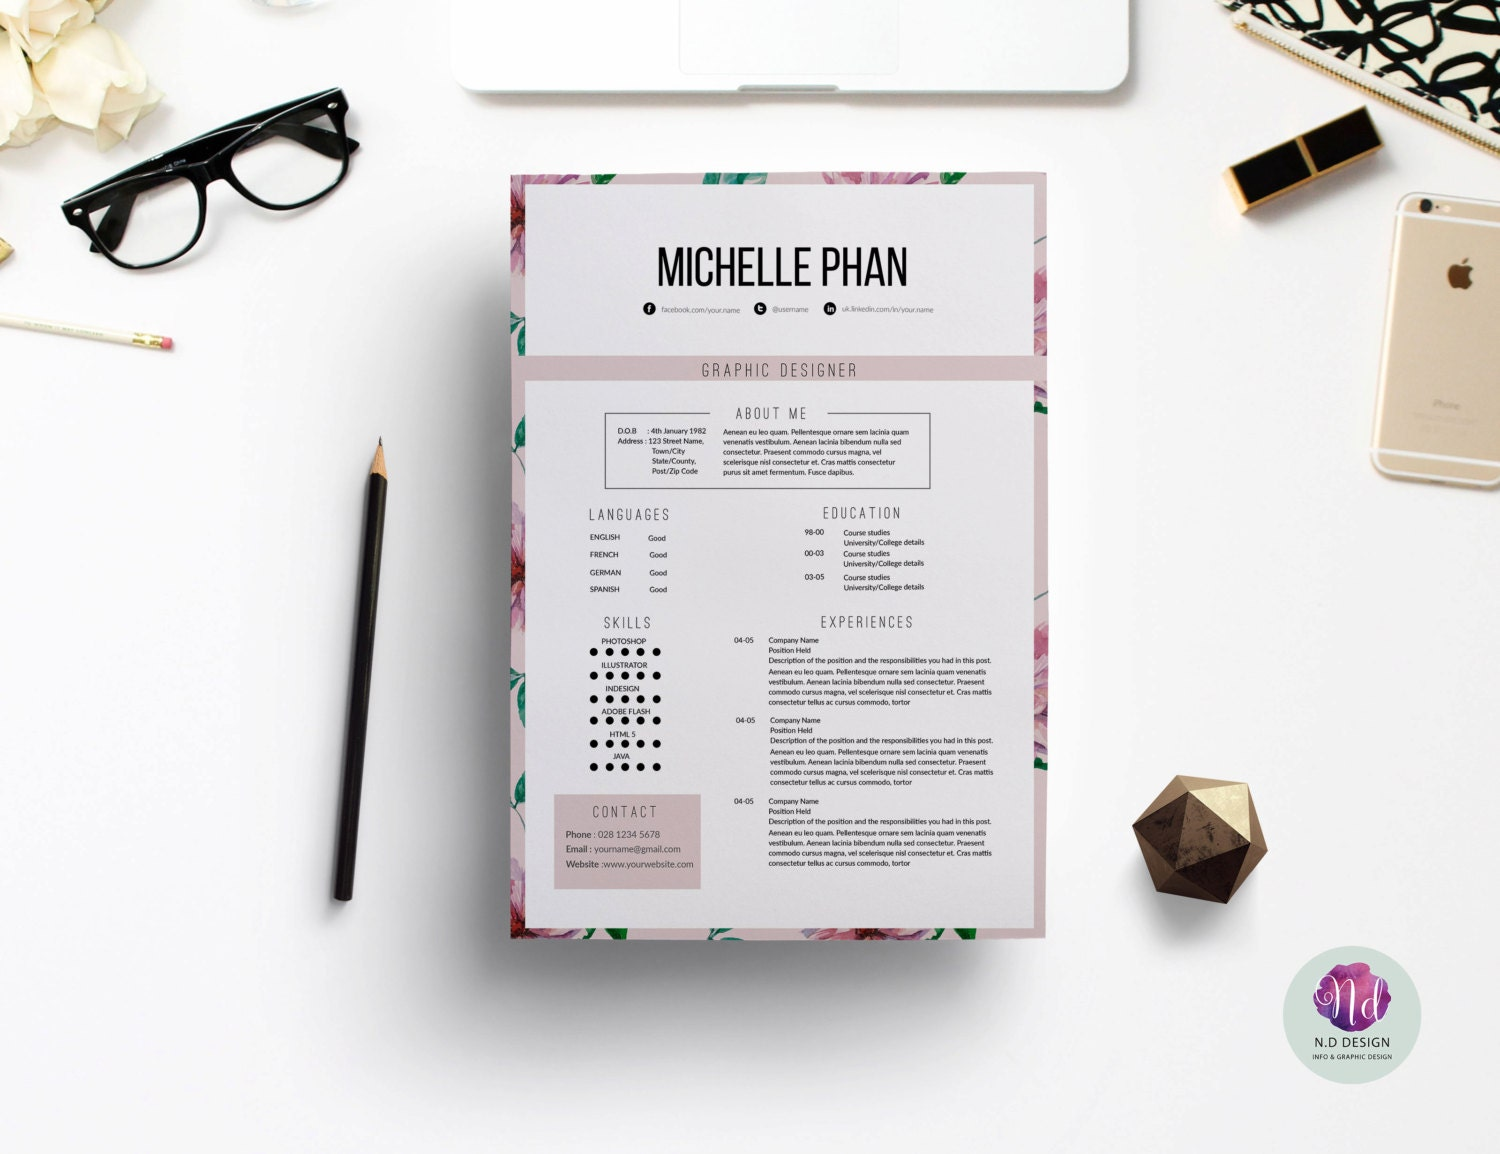 floral resume watercolor floral cv template cover letter reference template 1 page resume professional cv elegant resume creative cv